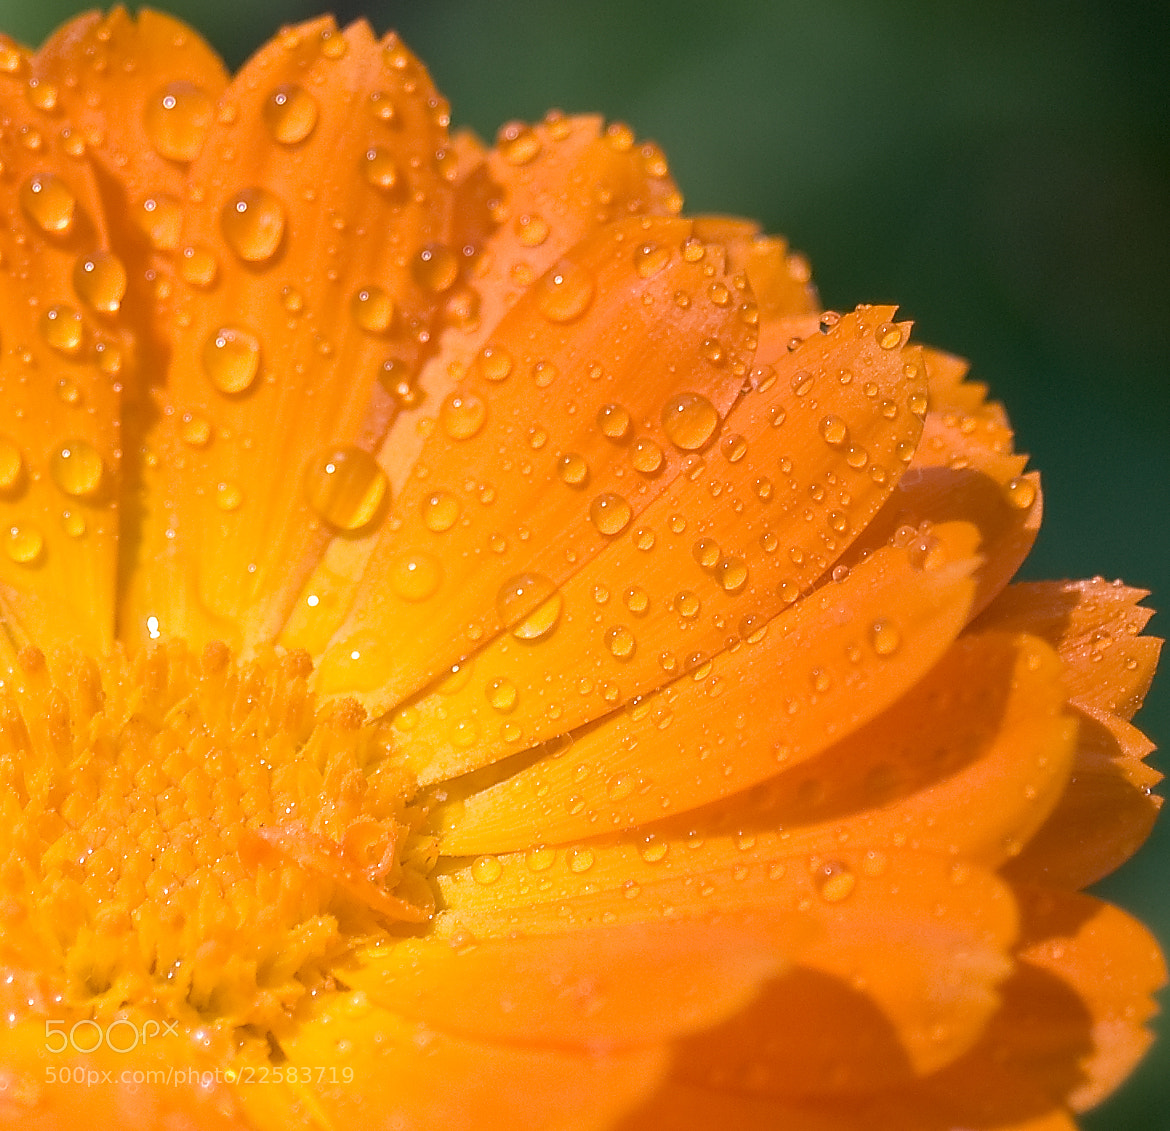 Photograph Water drops by Joseph M.G. on 500px